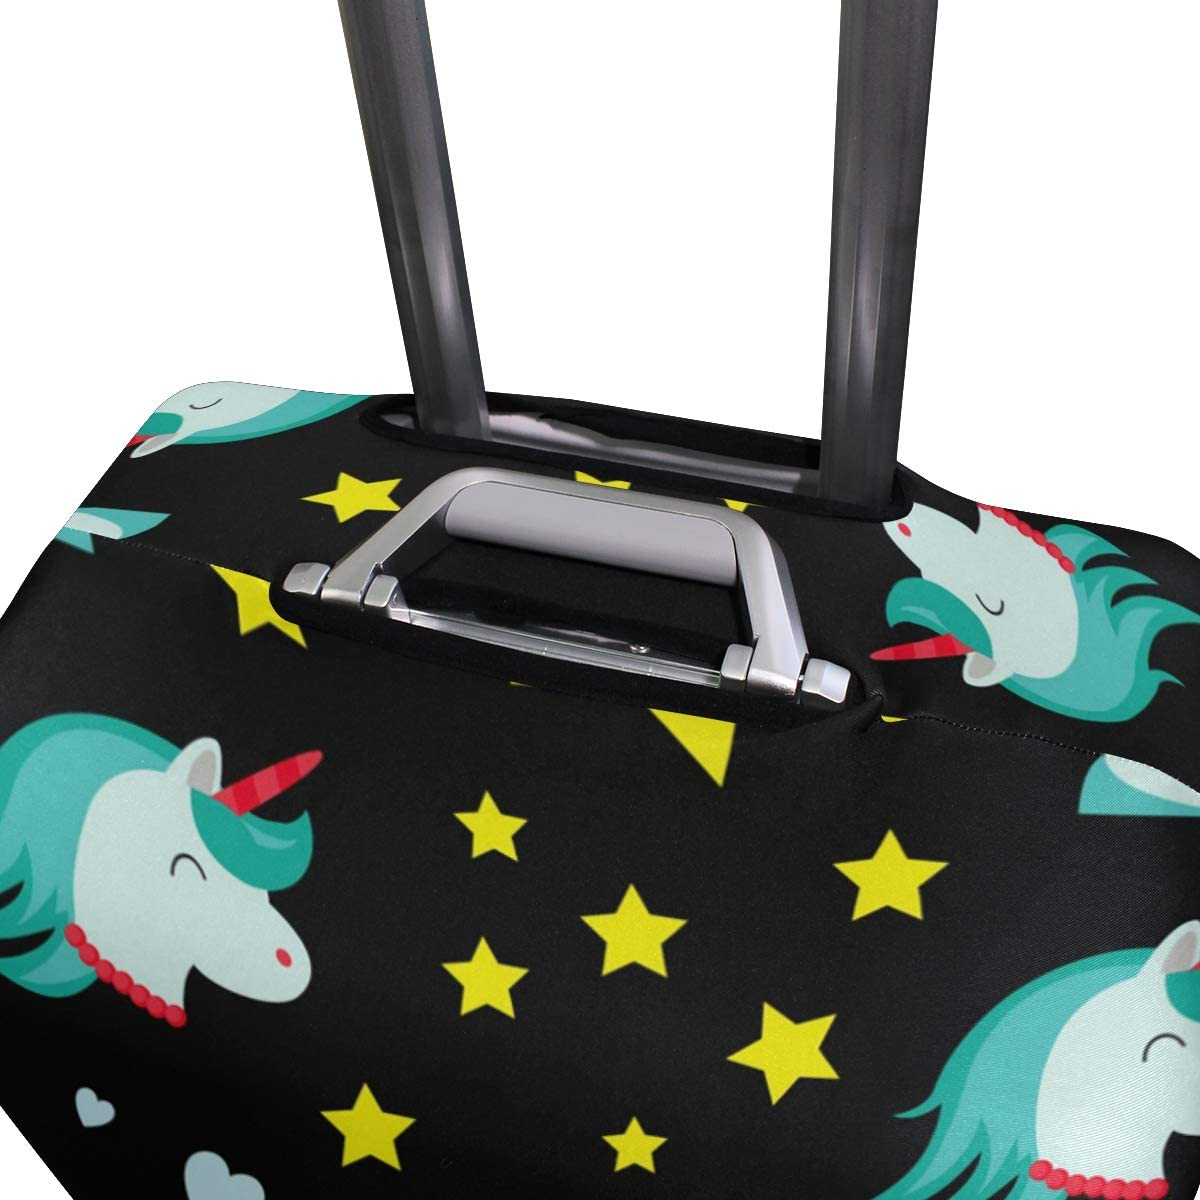 FOLPPLY Colorful Unicorn Luggage Cover Baggage Suitcase Travel Protector Fit for 18-32 Inch